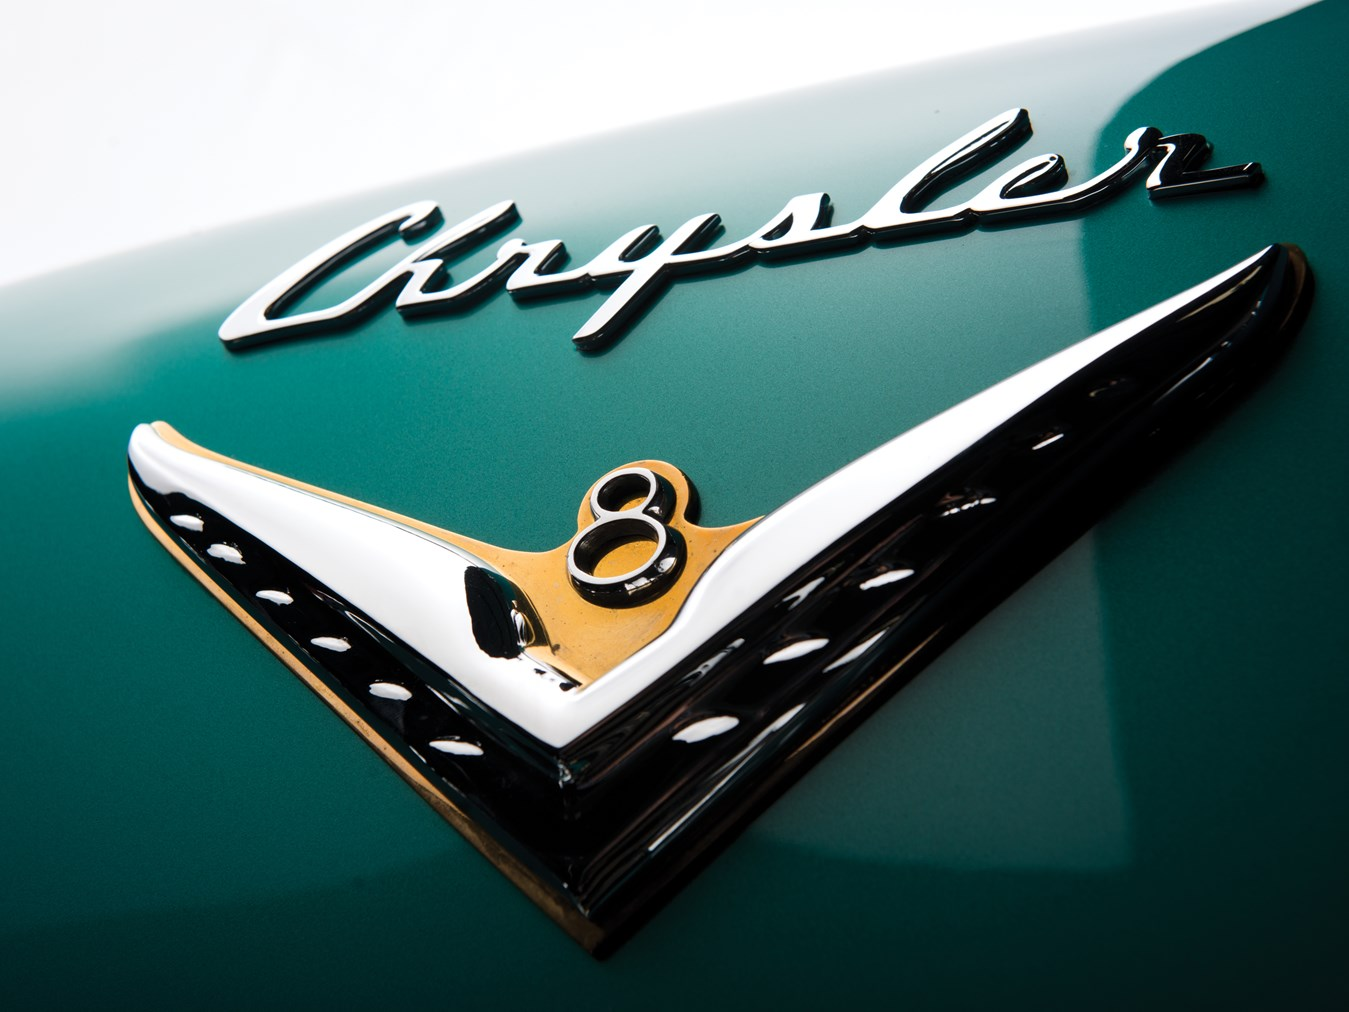 Rm sothebys 1954 chrysler gs 1 special by ghia the don davis 1954 chrysler gs 1 special by ghia biocorpaavc